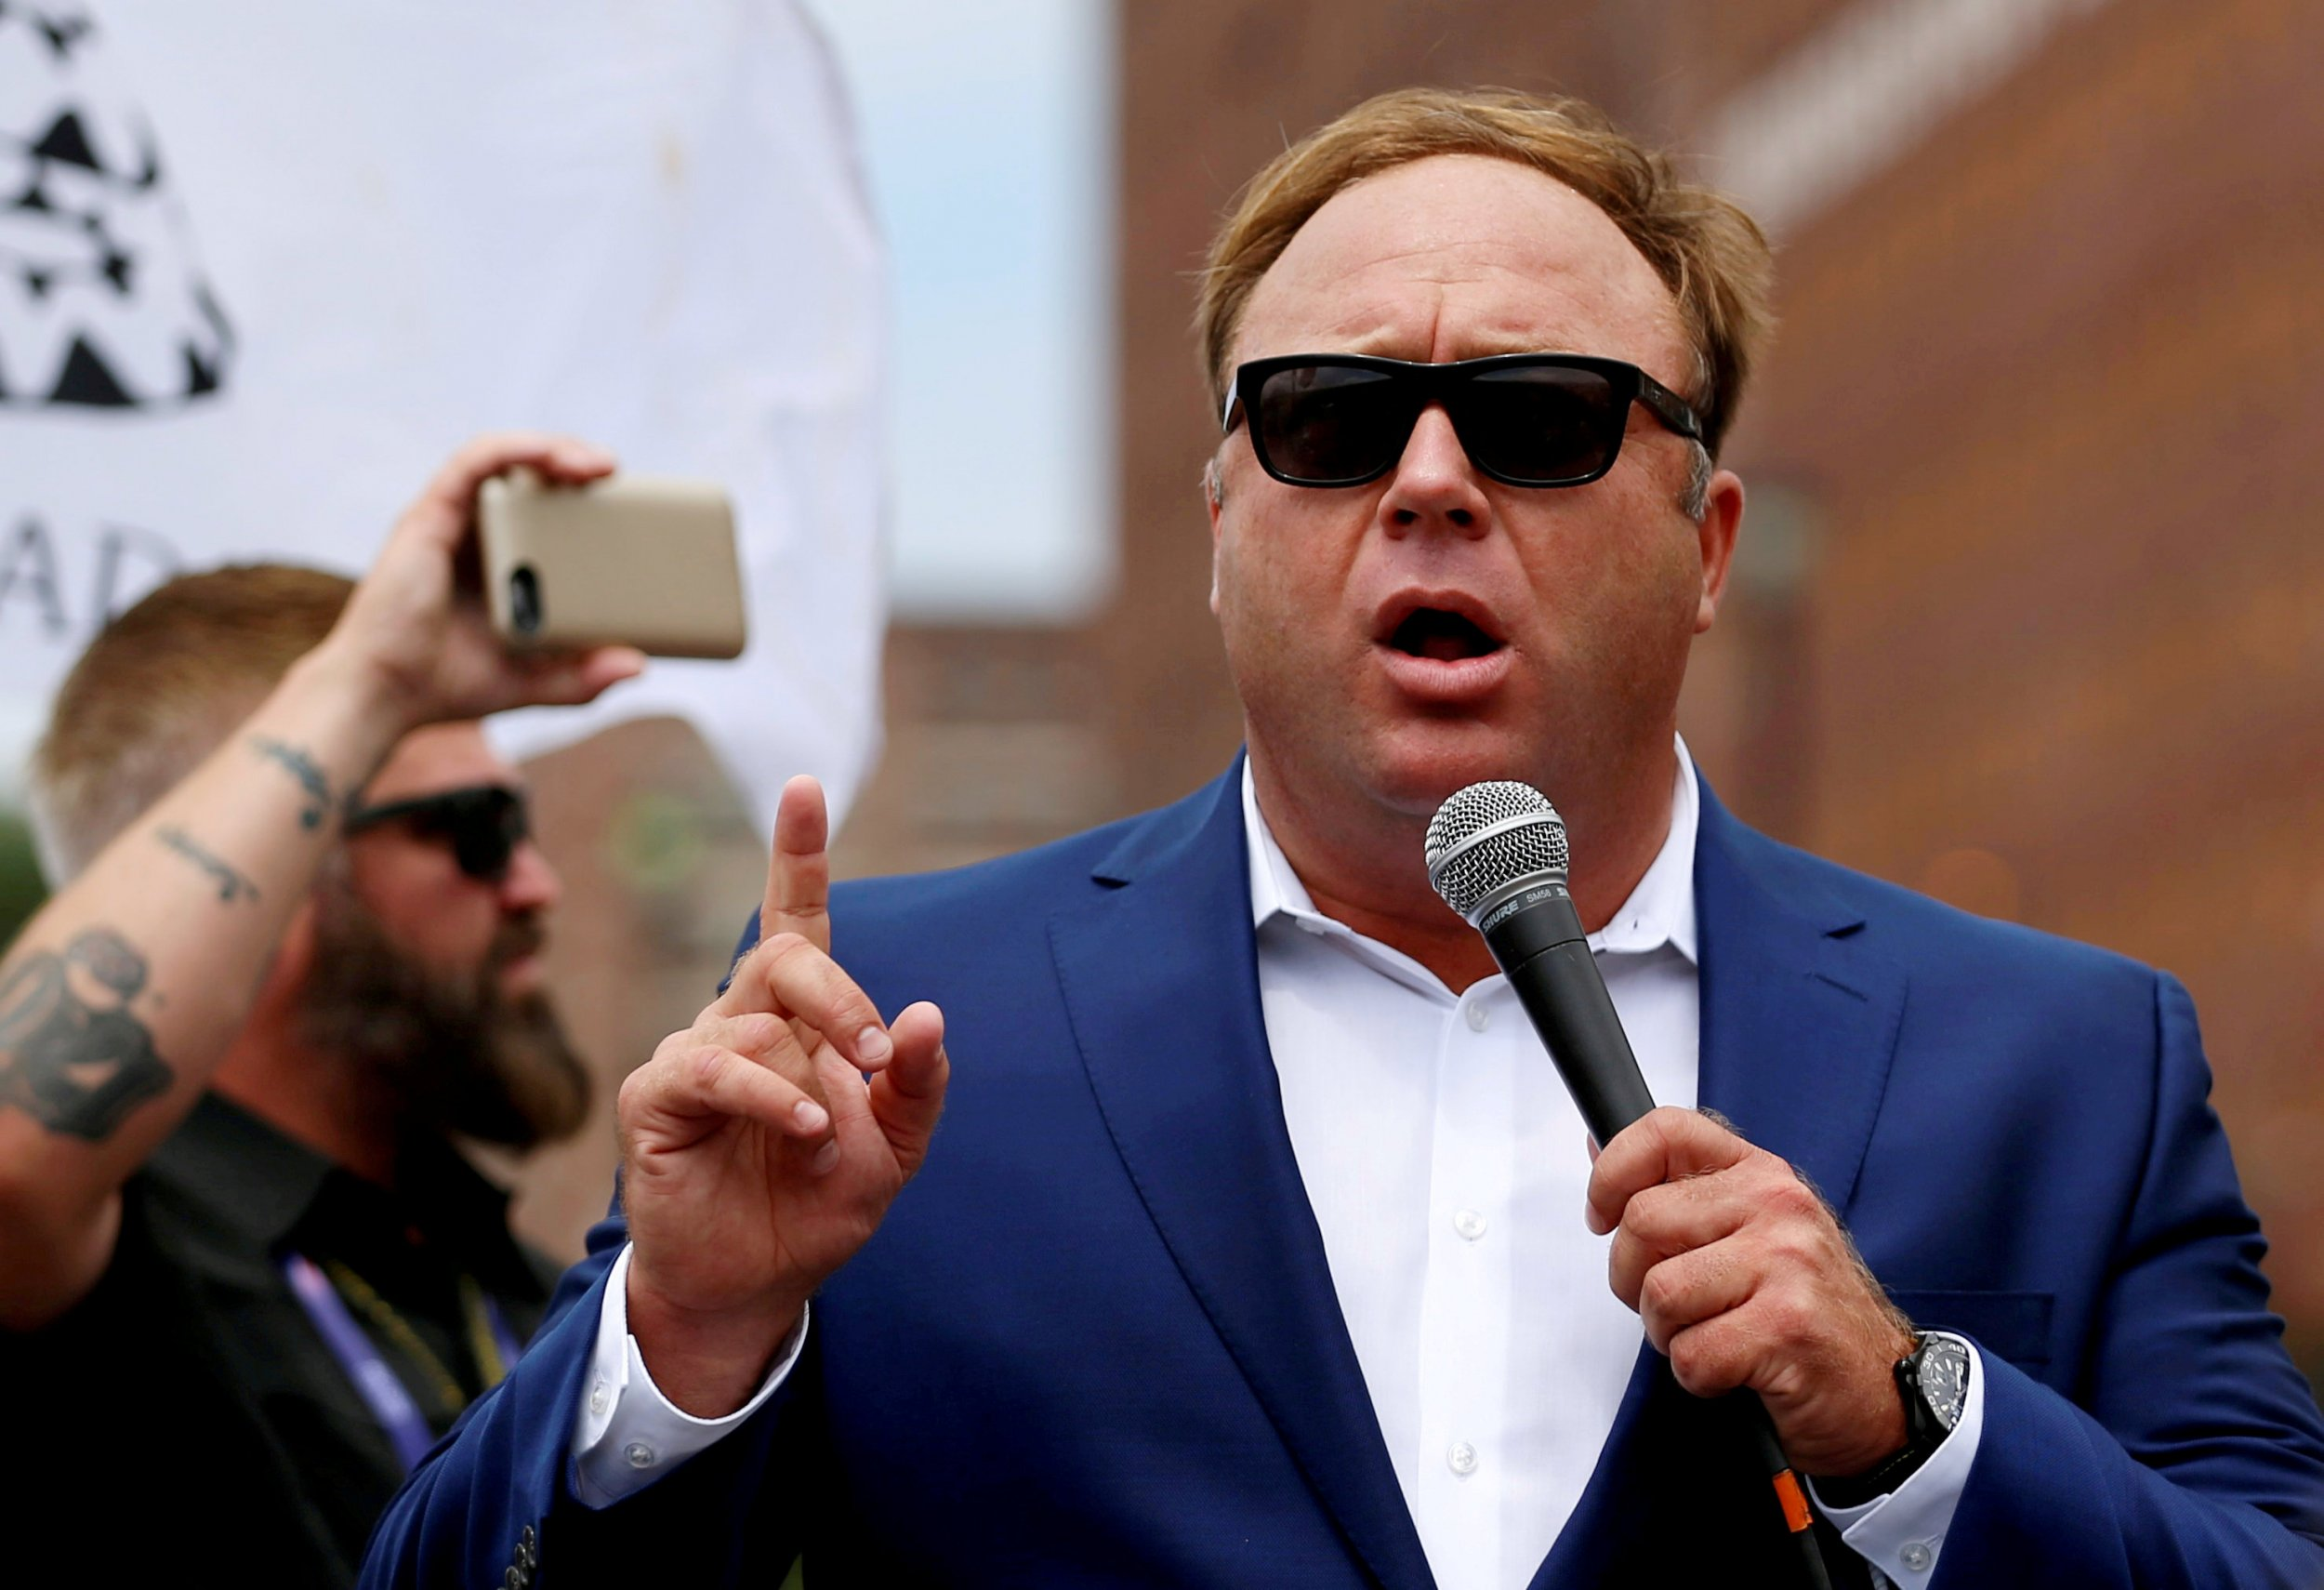 2018-08-01T133635Z_1089459799_RC1340945FA0_RTRMADP_3_USA-LAWSUIT-ALEXJONES